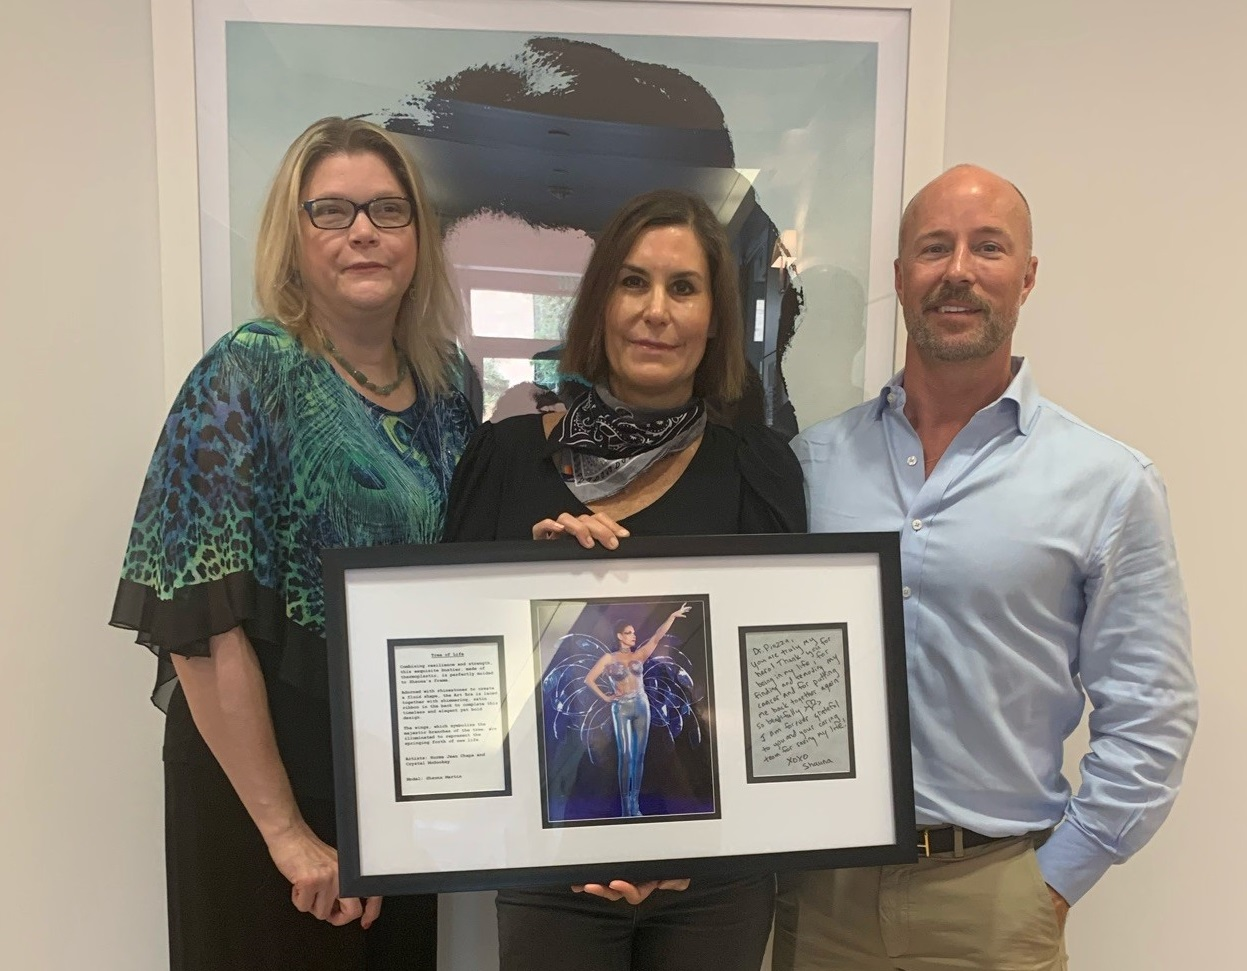 Art Bra 2021 Dr. Piazza receiving plaque for support